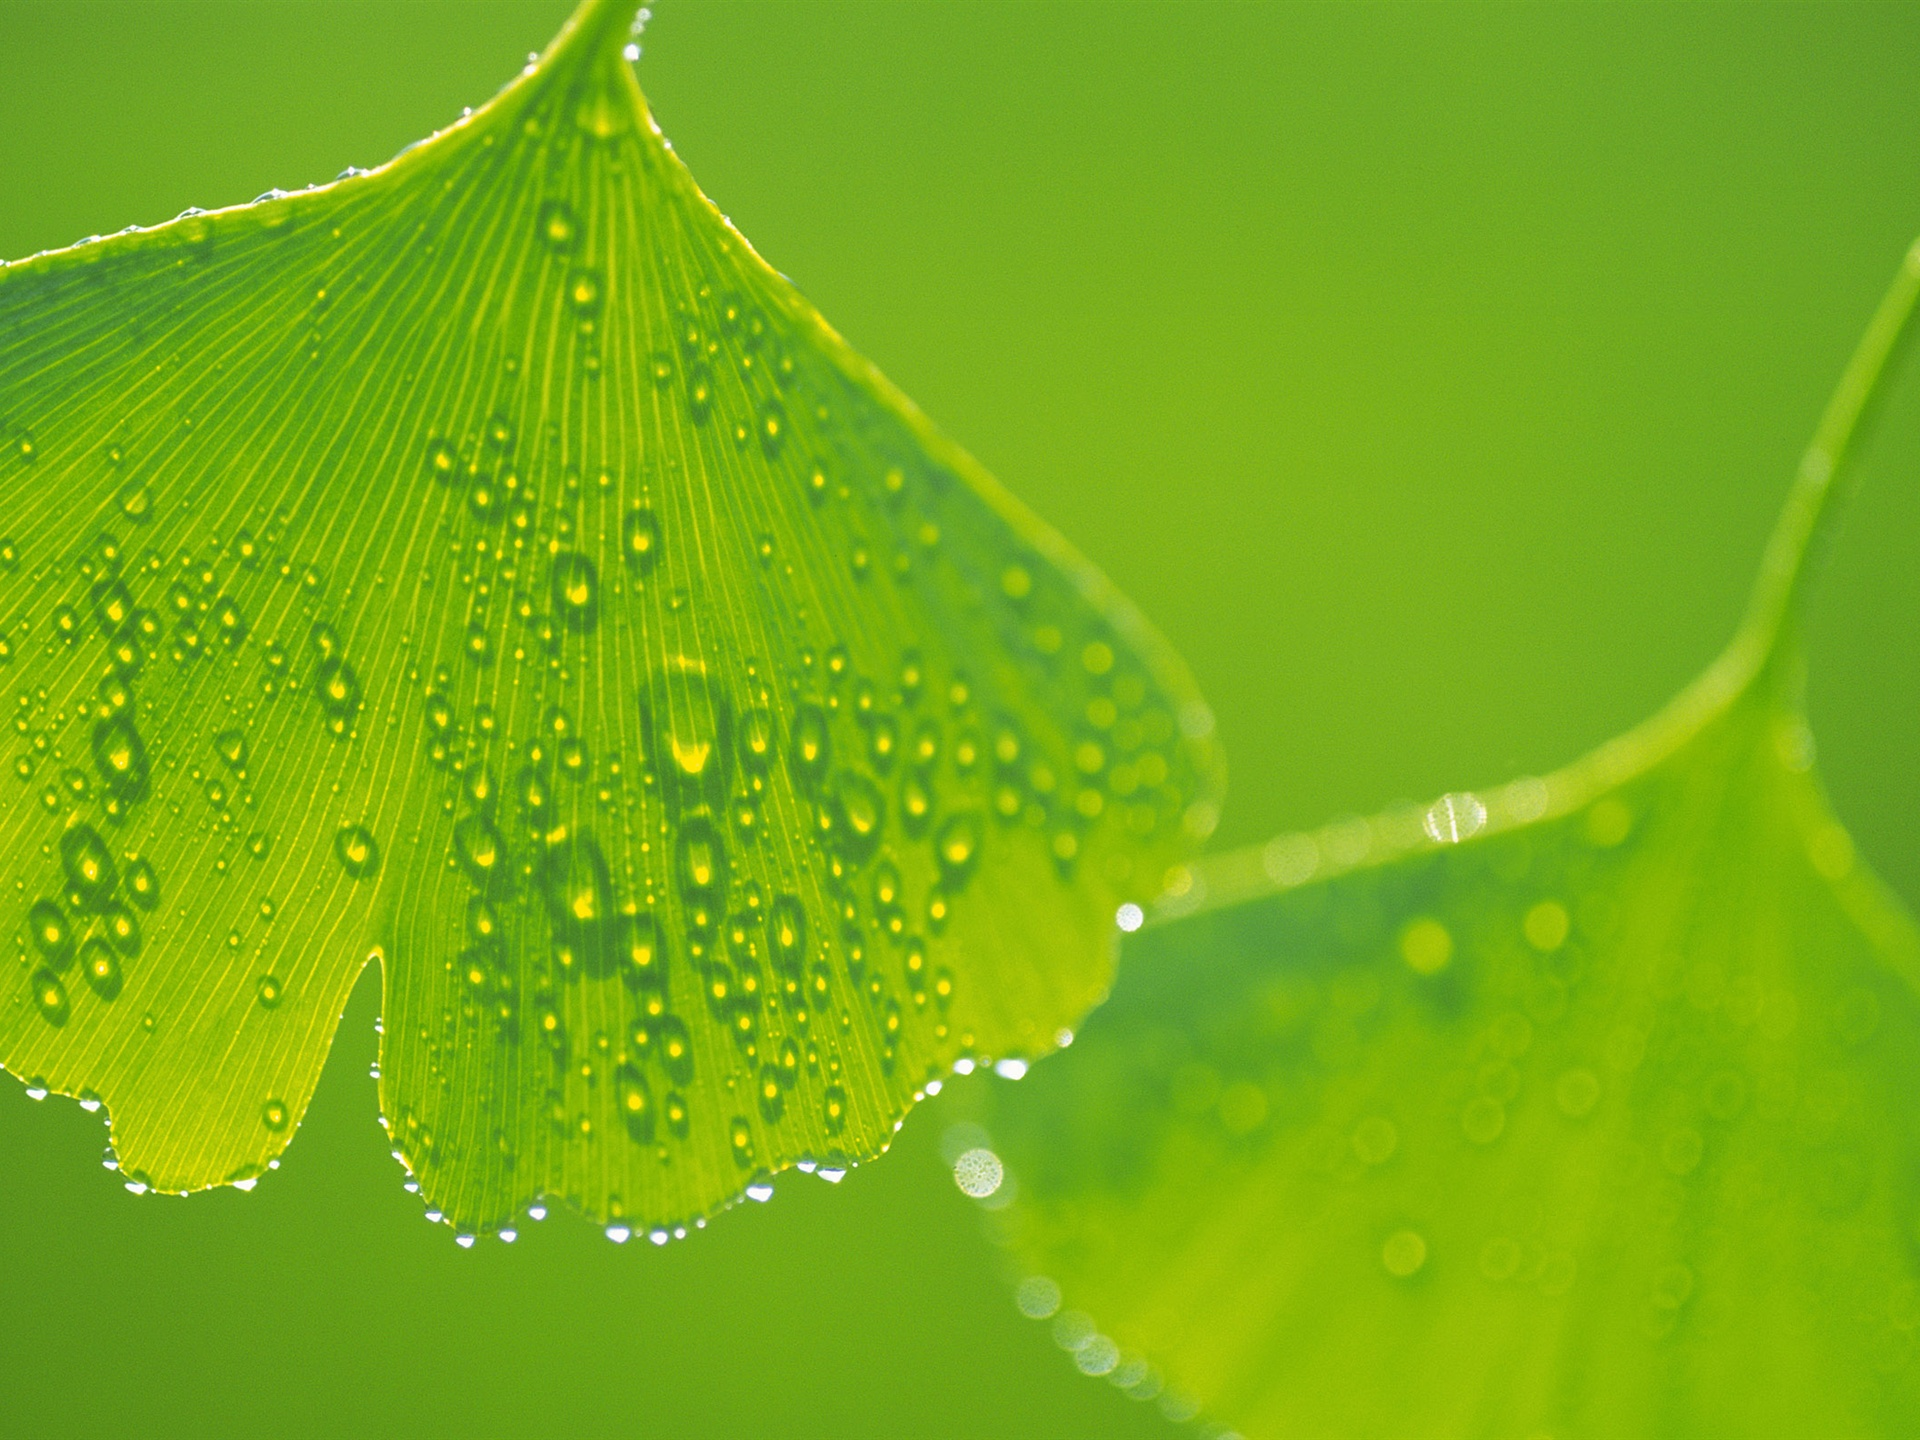 Ginkgo leaves with water drops close-up wallpaper - 1920x1440